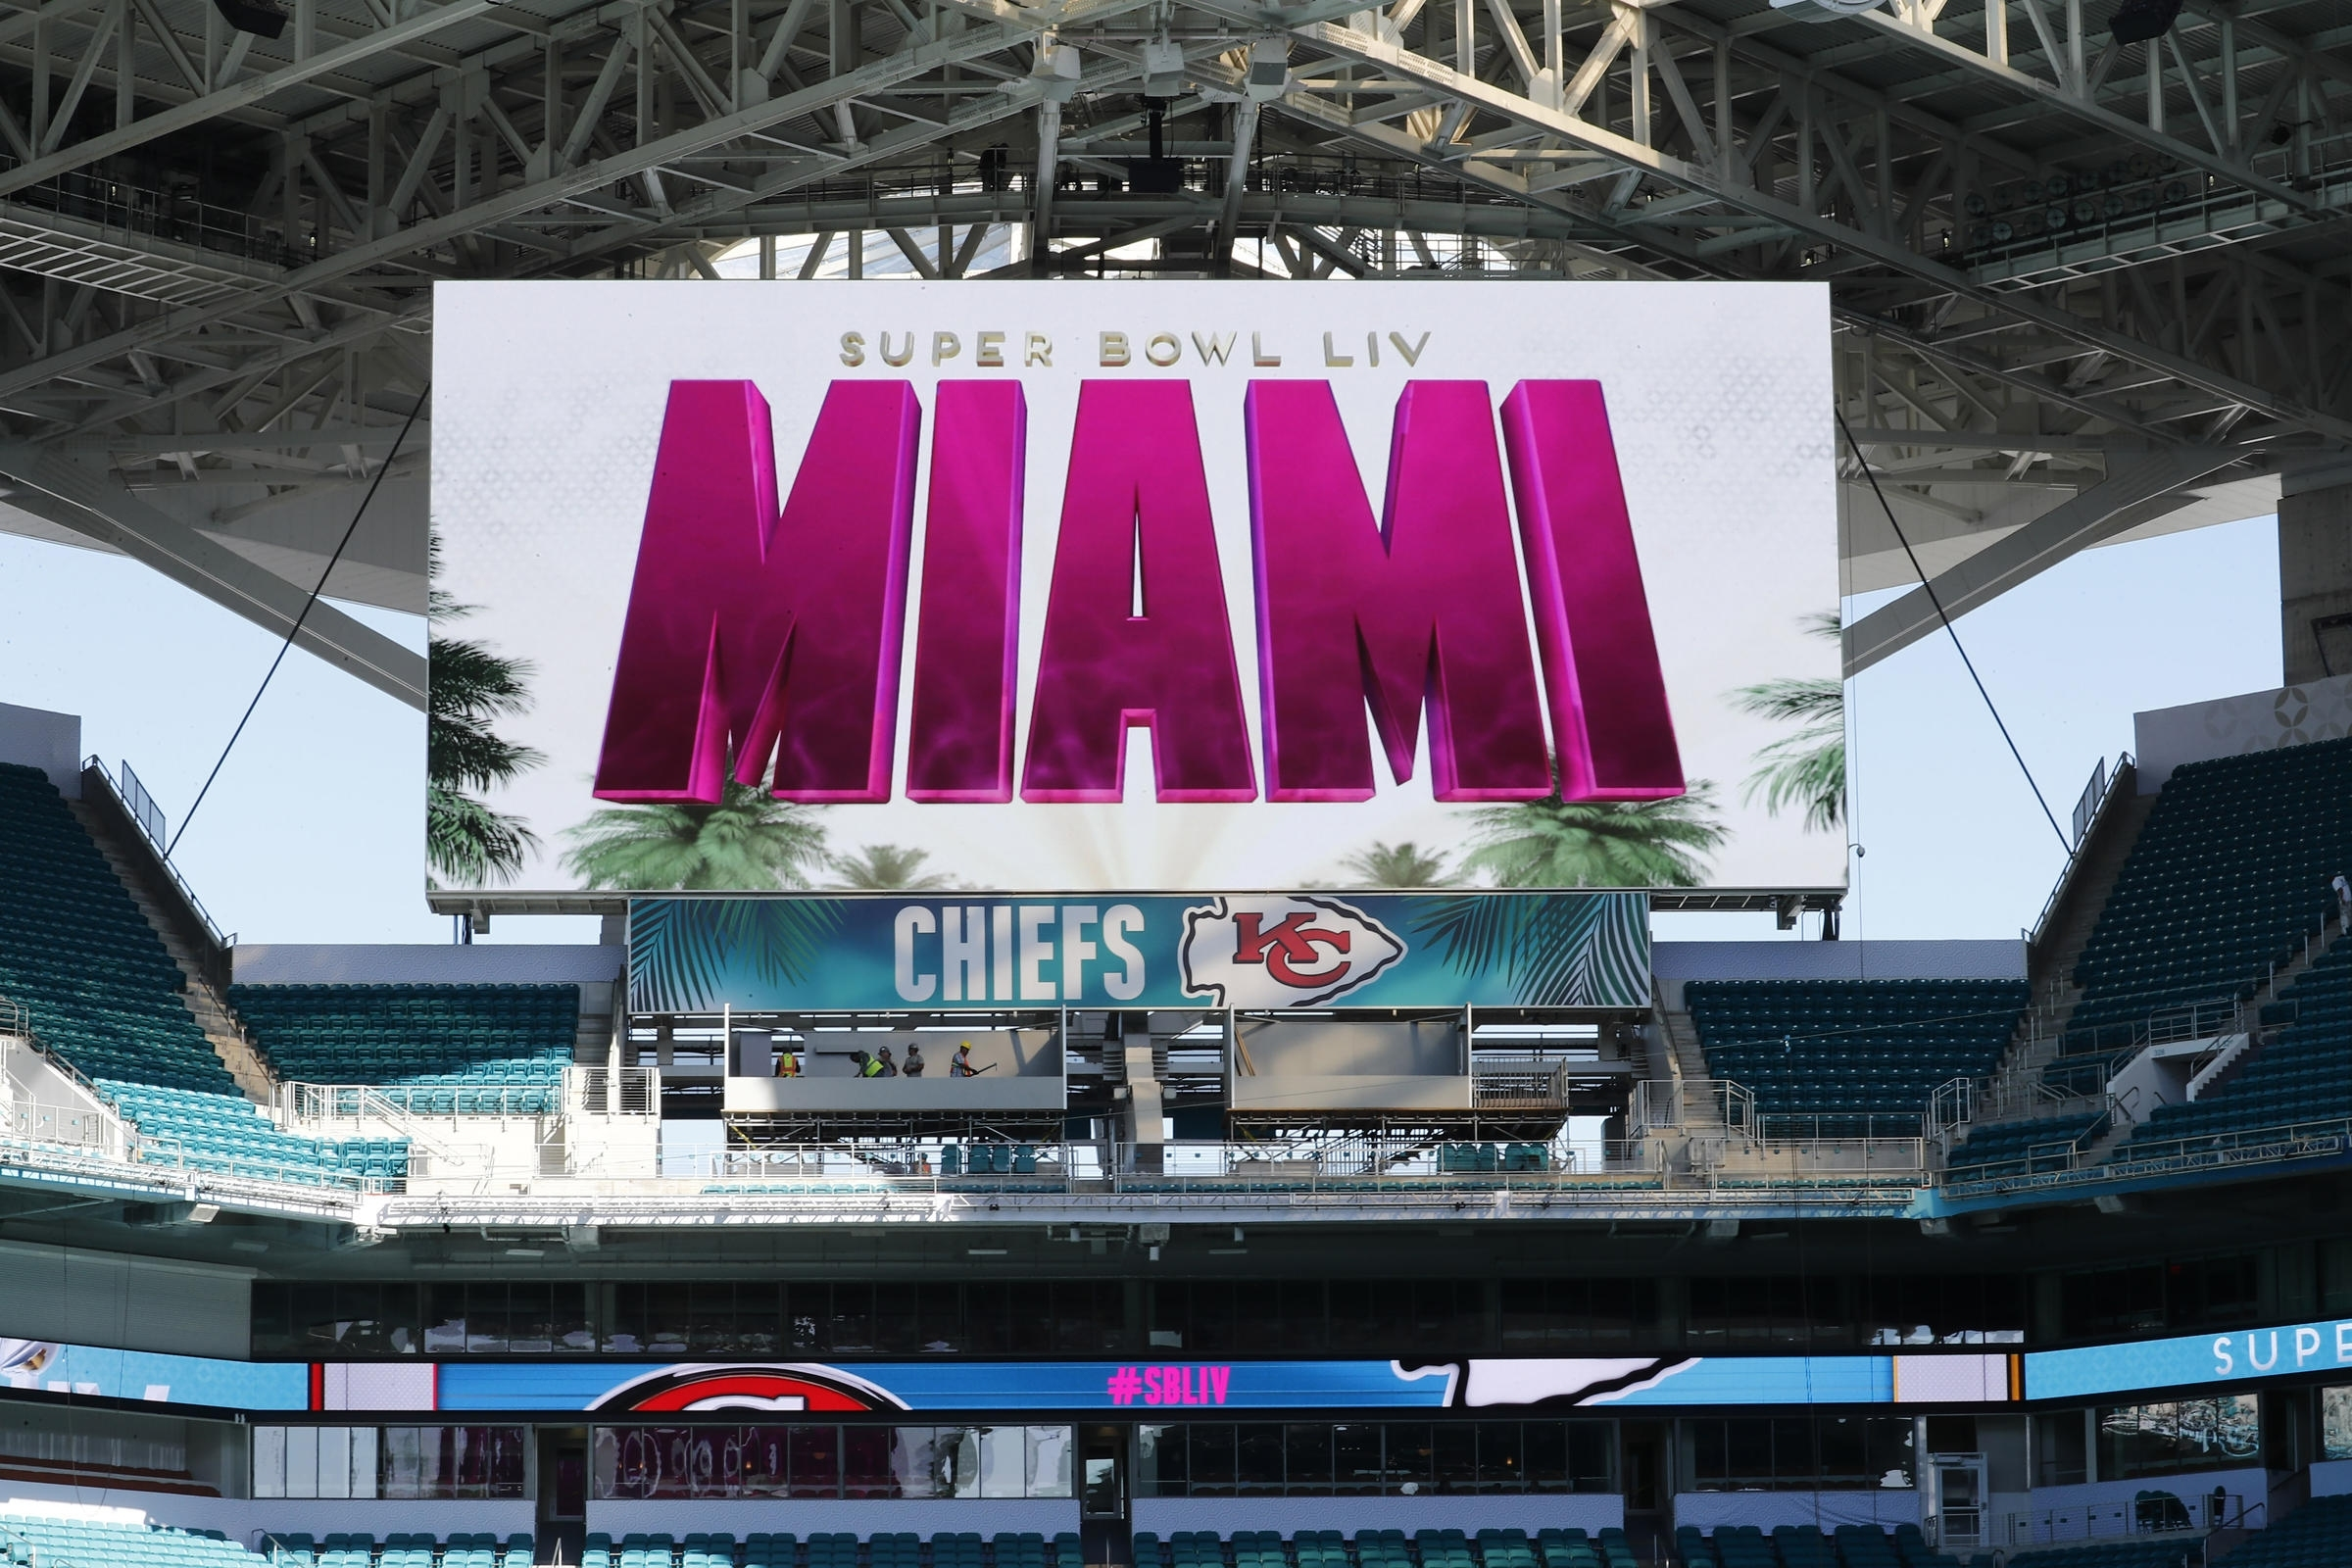 Chiefs Fans Going To Miami For Super Bowl Liv Are Paying throughout Miami Super Bowl Wins